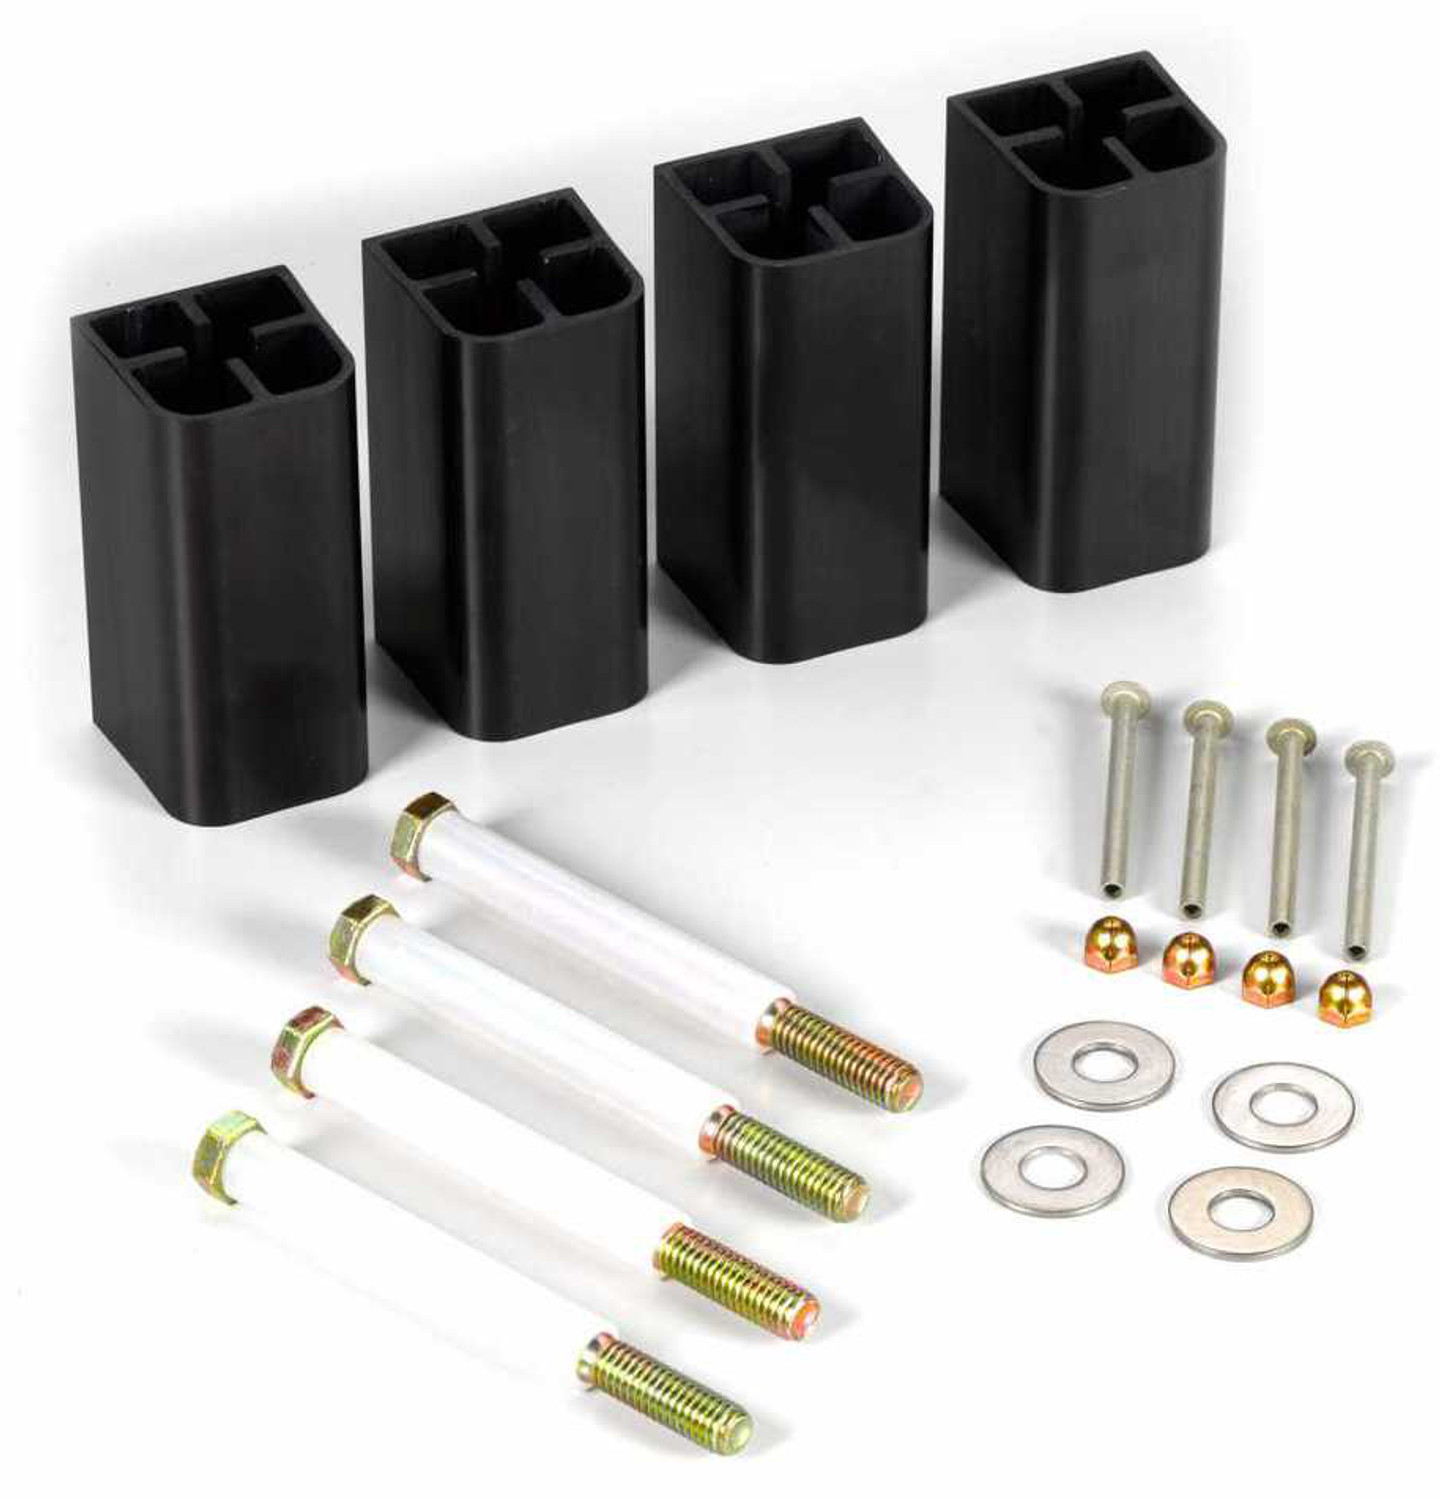 1A High Rise Spacer Kit